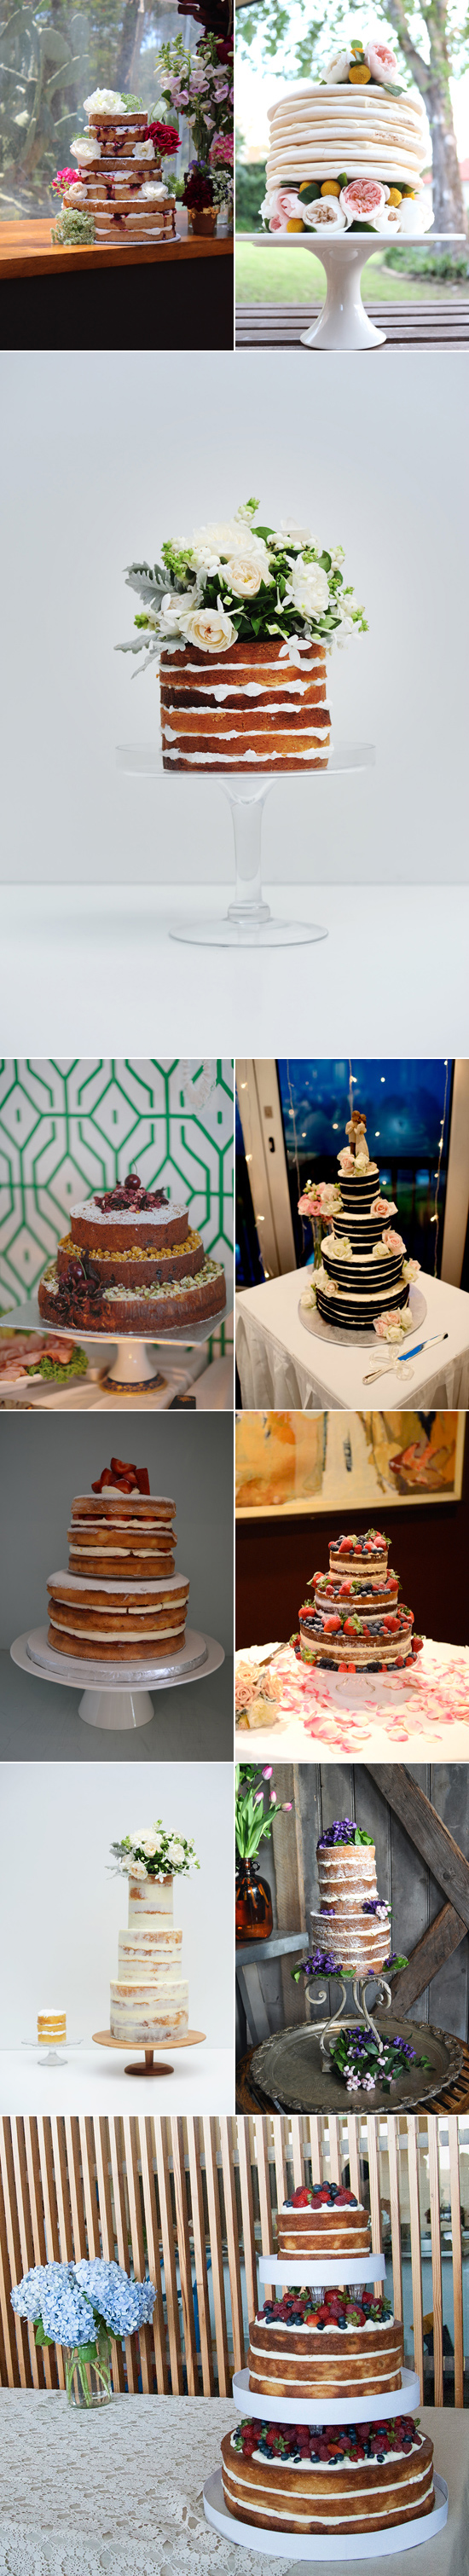 naked wedding cakes002